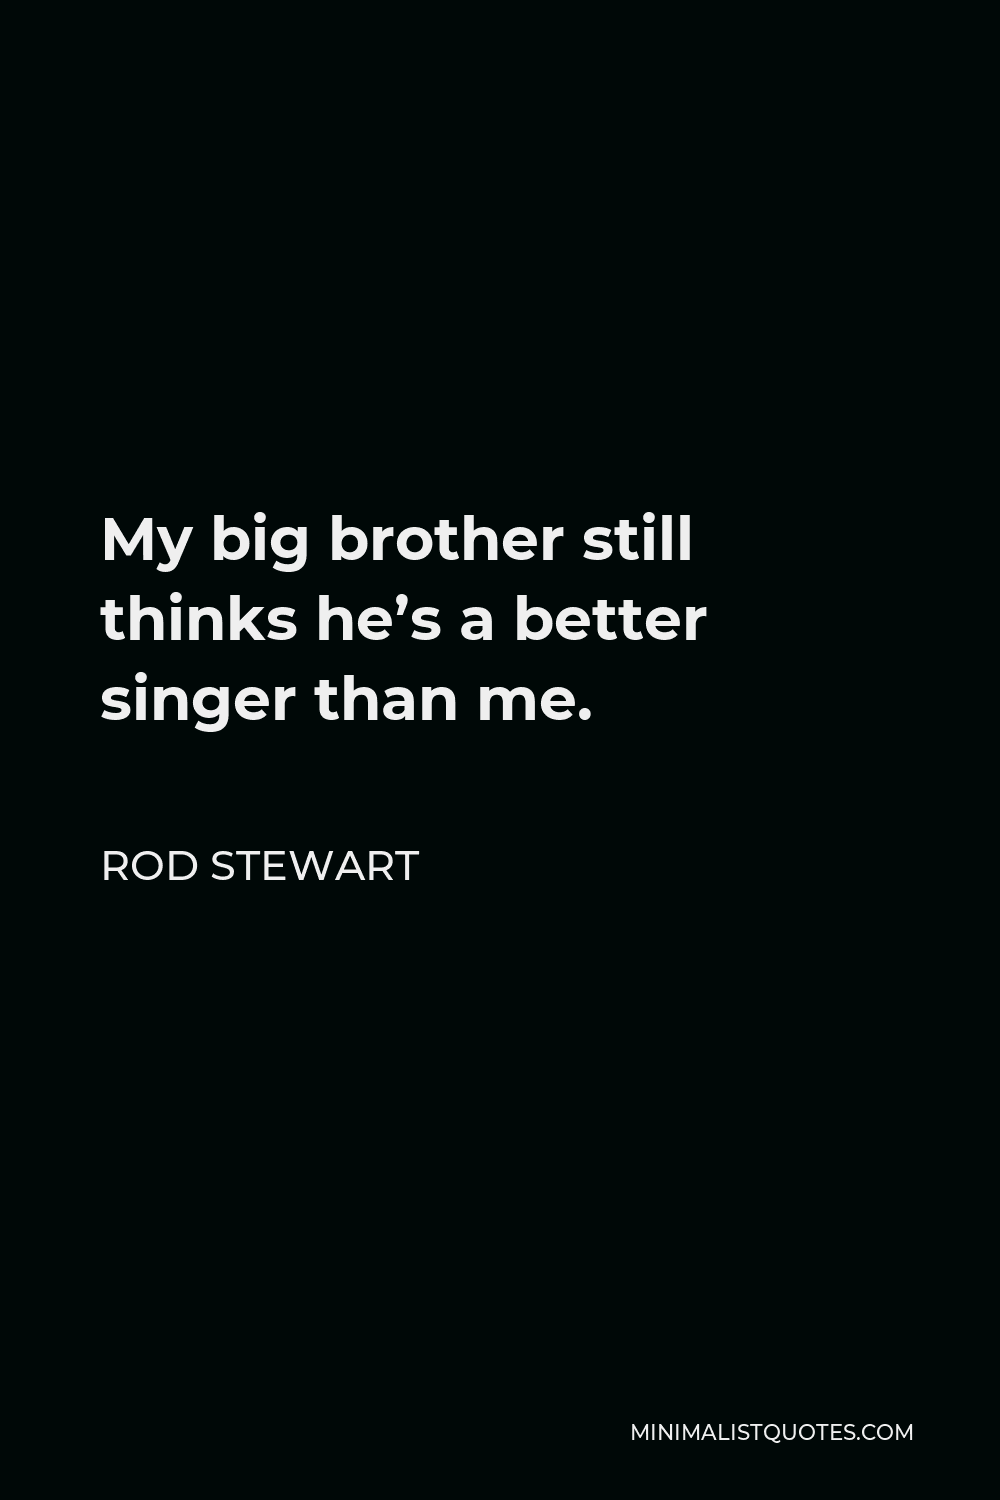 Rod Stewart Quote - My big brother still thinks he's a better singer than me.